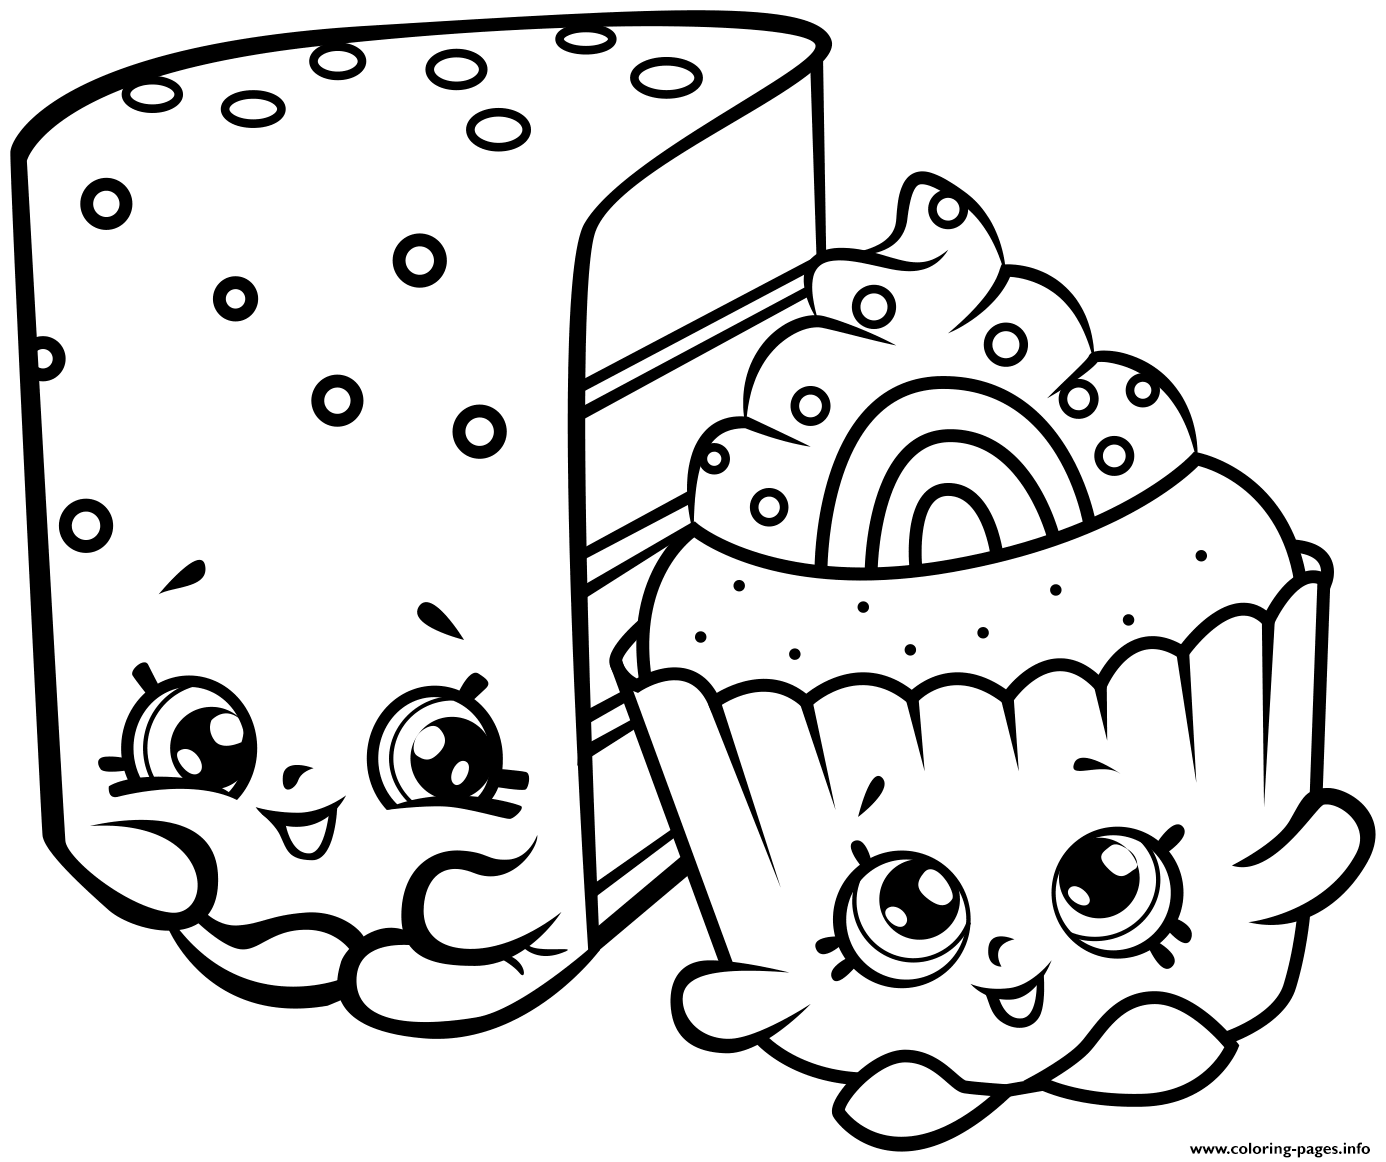 lol cake coloring pages pin by terry wolford on lol birthday party lol dolls pages lol coloring cake